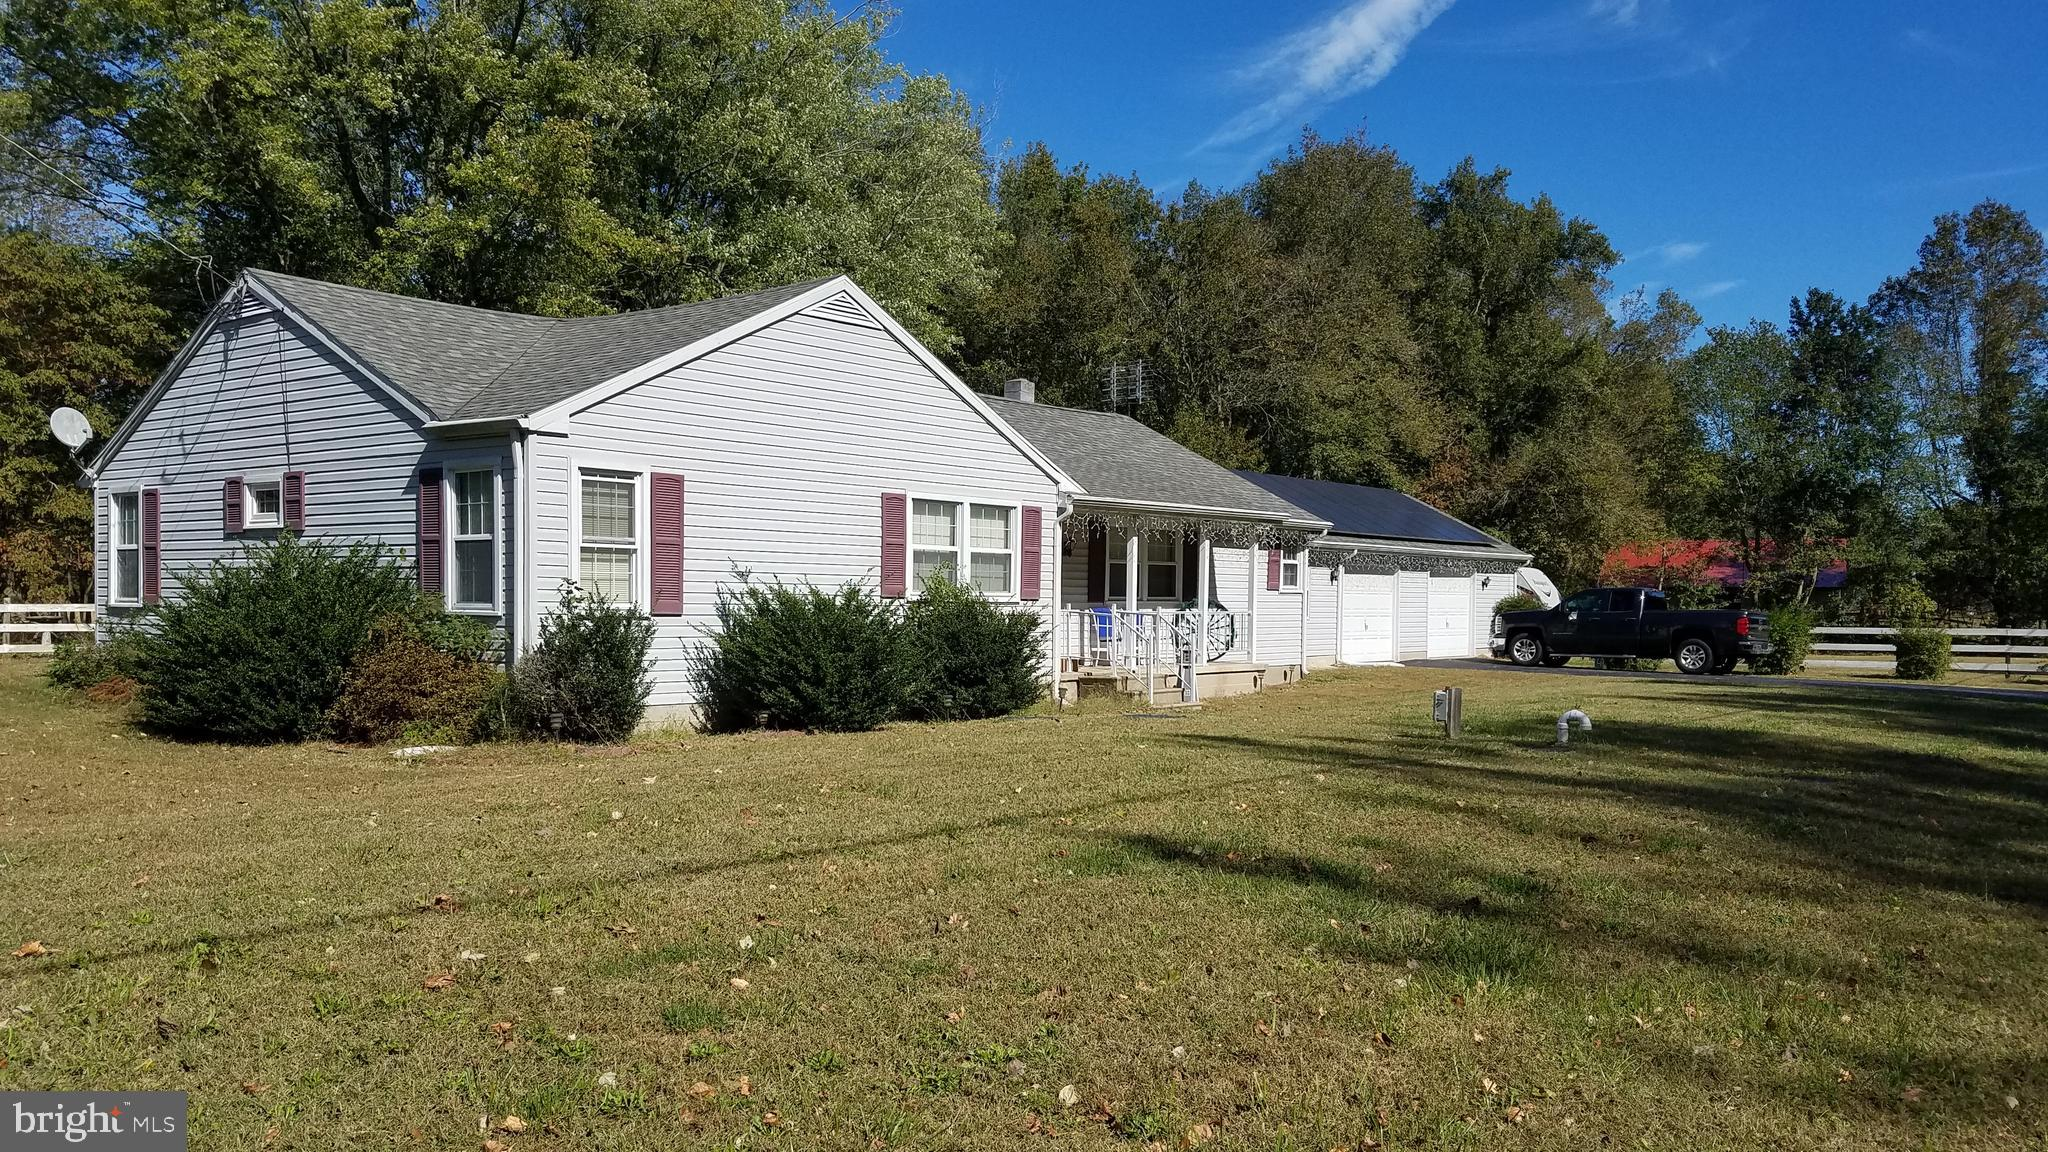 If you looking for a great home on a great lot this 1.47 acre is just perfect. This 4 bedroom 2 full